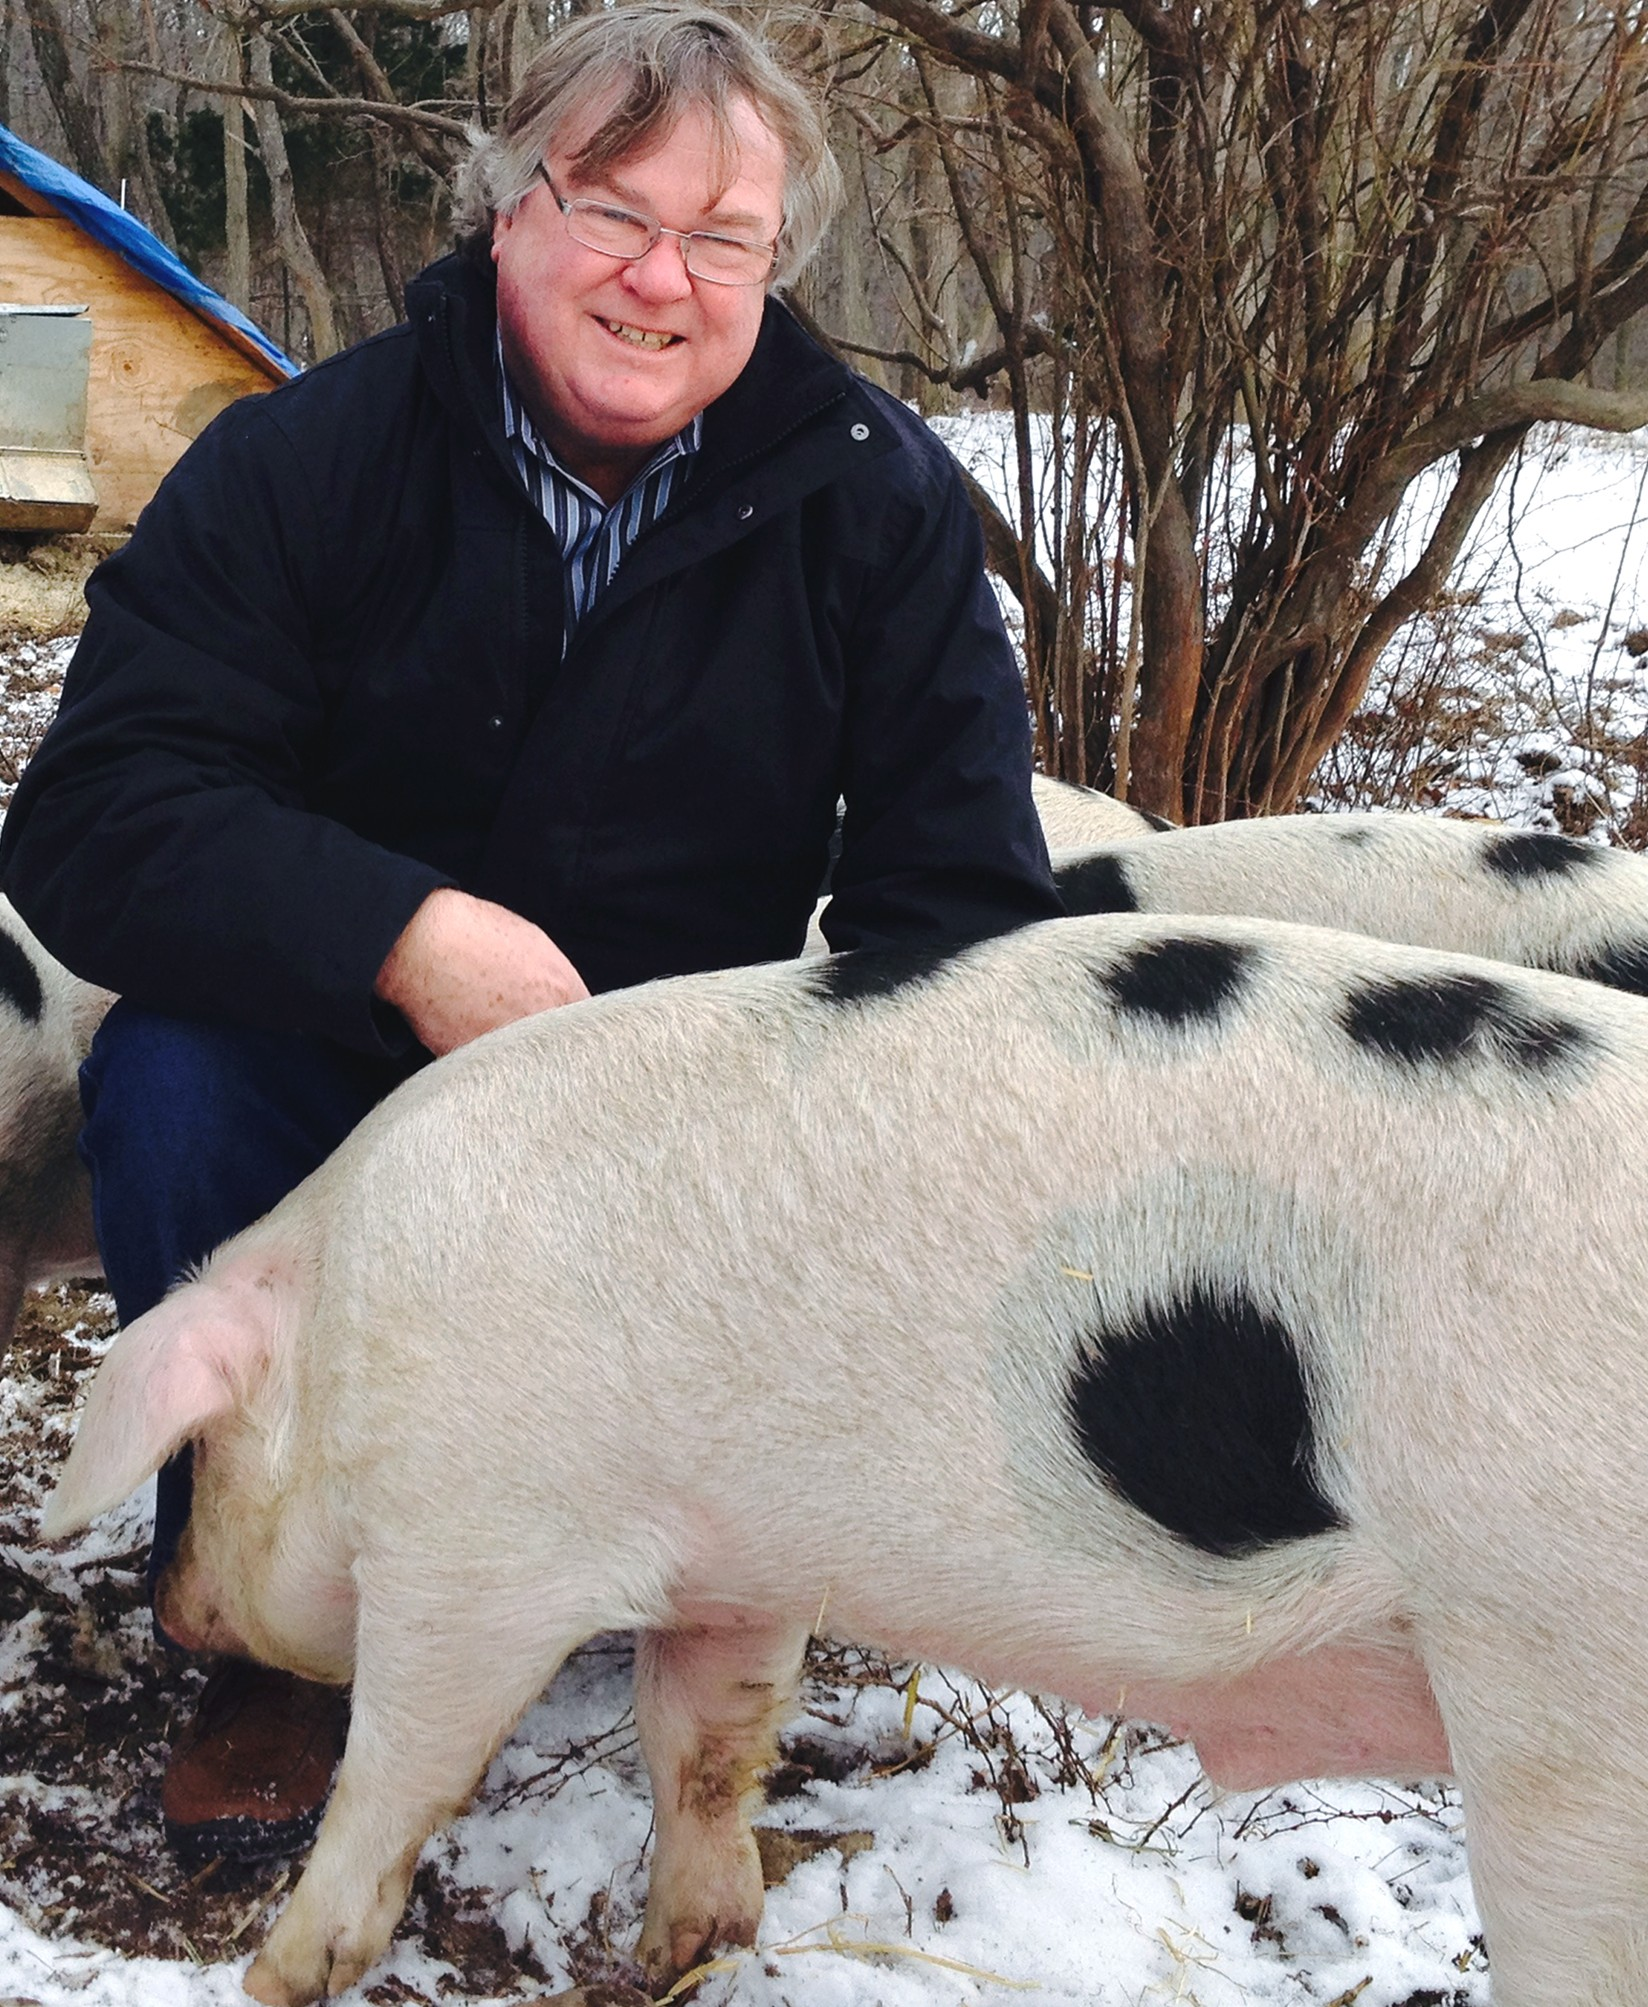 Author Barry Estabrook with pigs at Glynwood Institute, NY